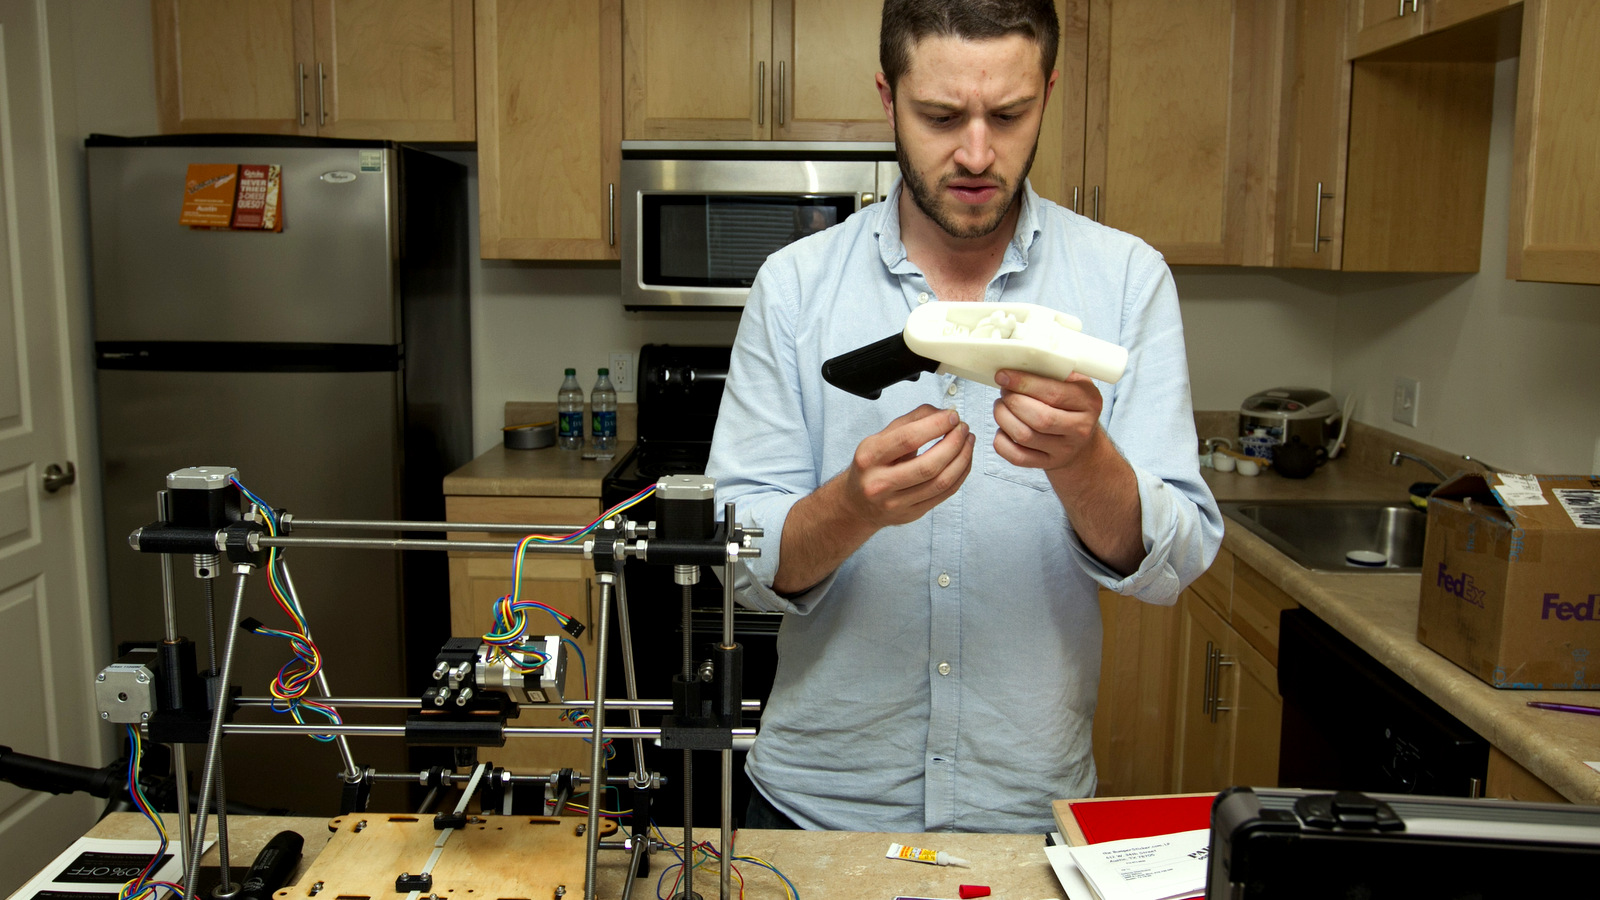 Cody Wilson works on the first completely 3D-printed handgun, The Liberator, at his home in Austin on Friday May 10, 2013. (AP Photo/Austin American Statesman, Jay Janner)